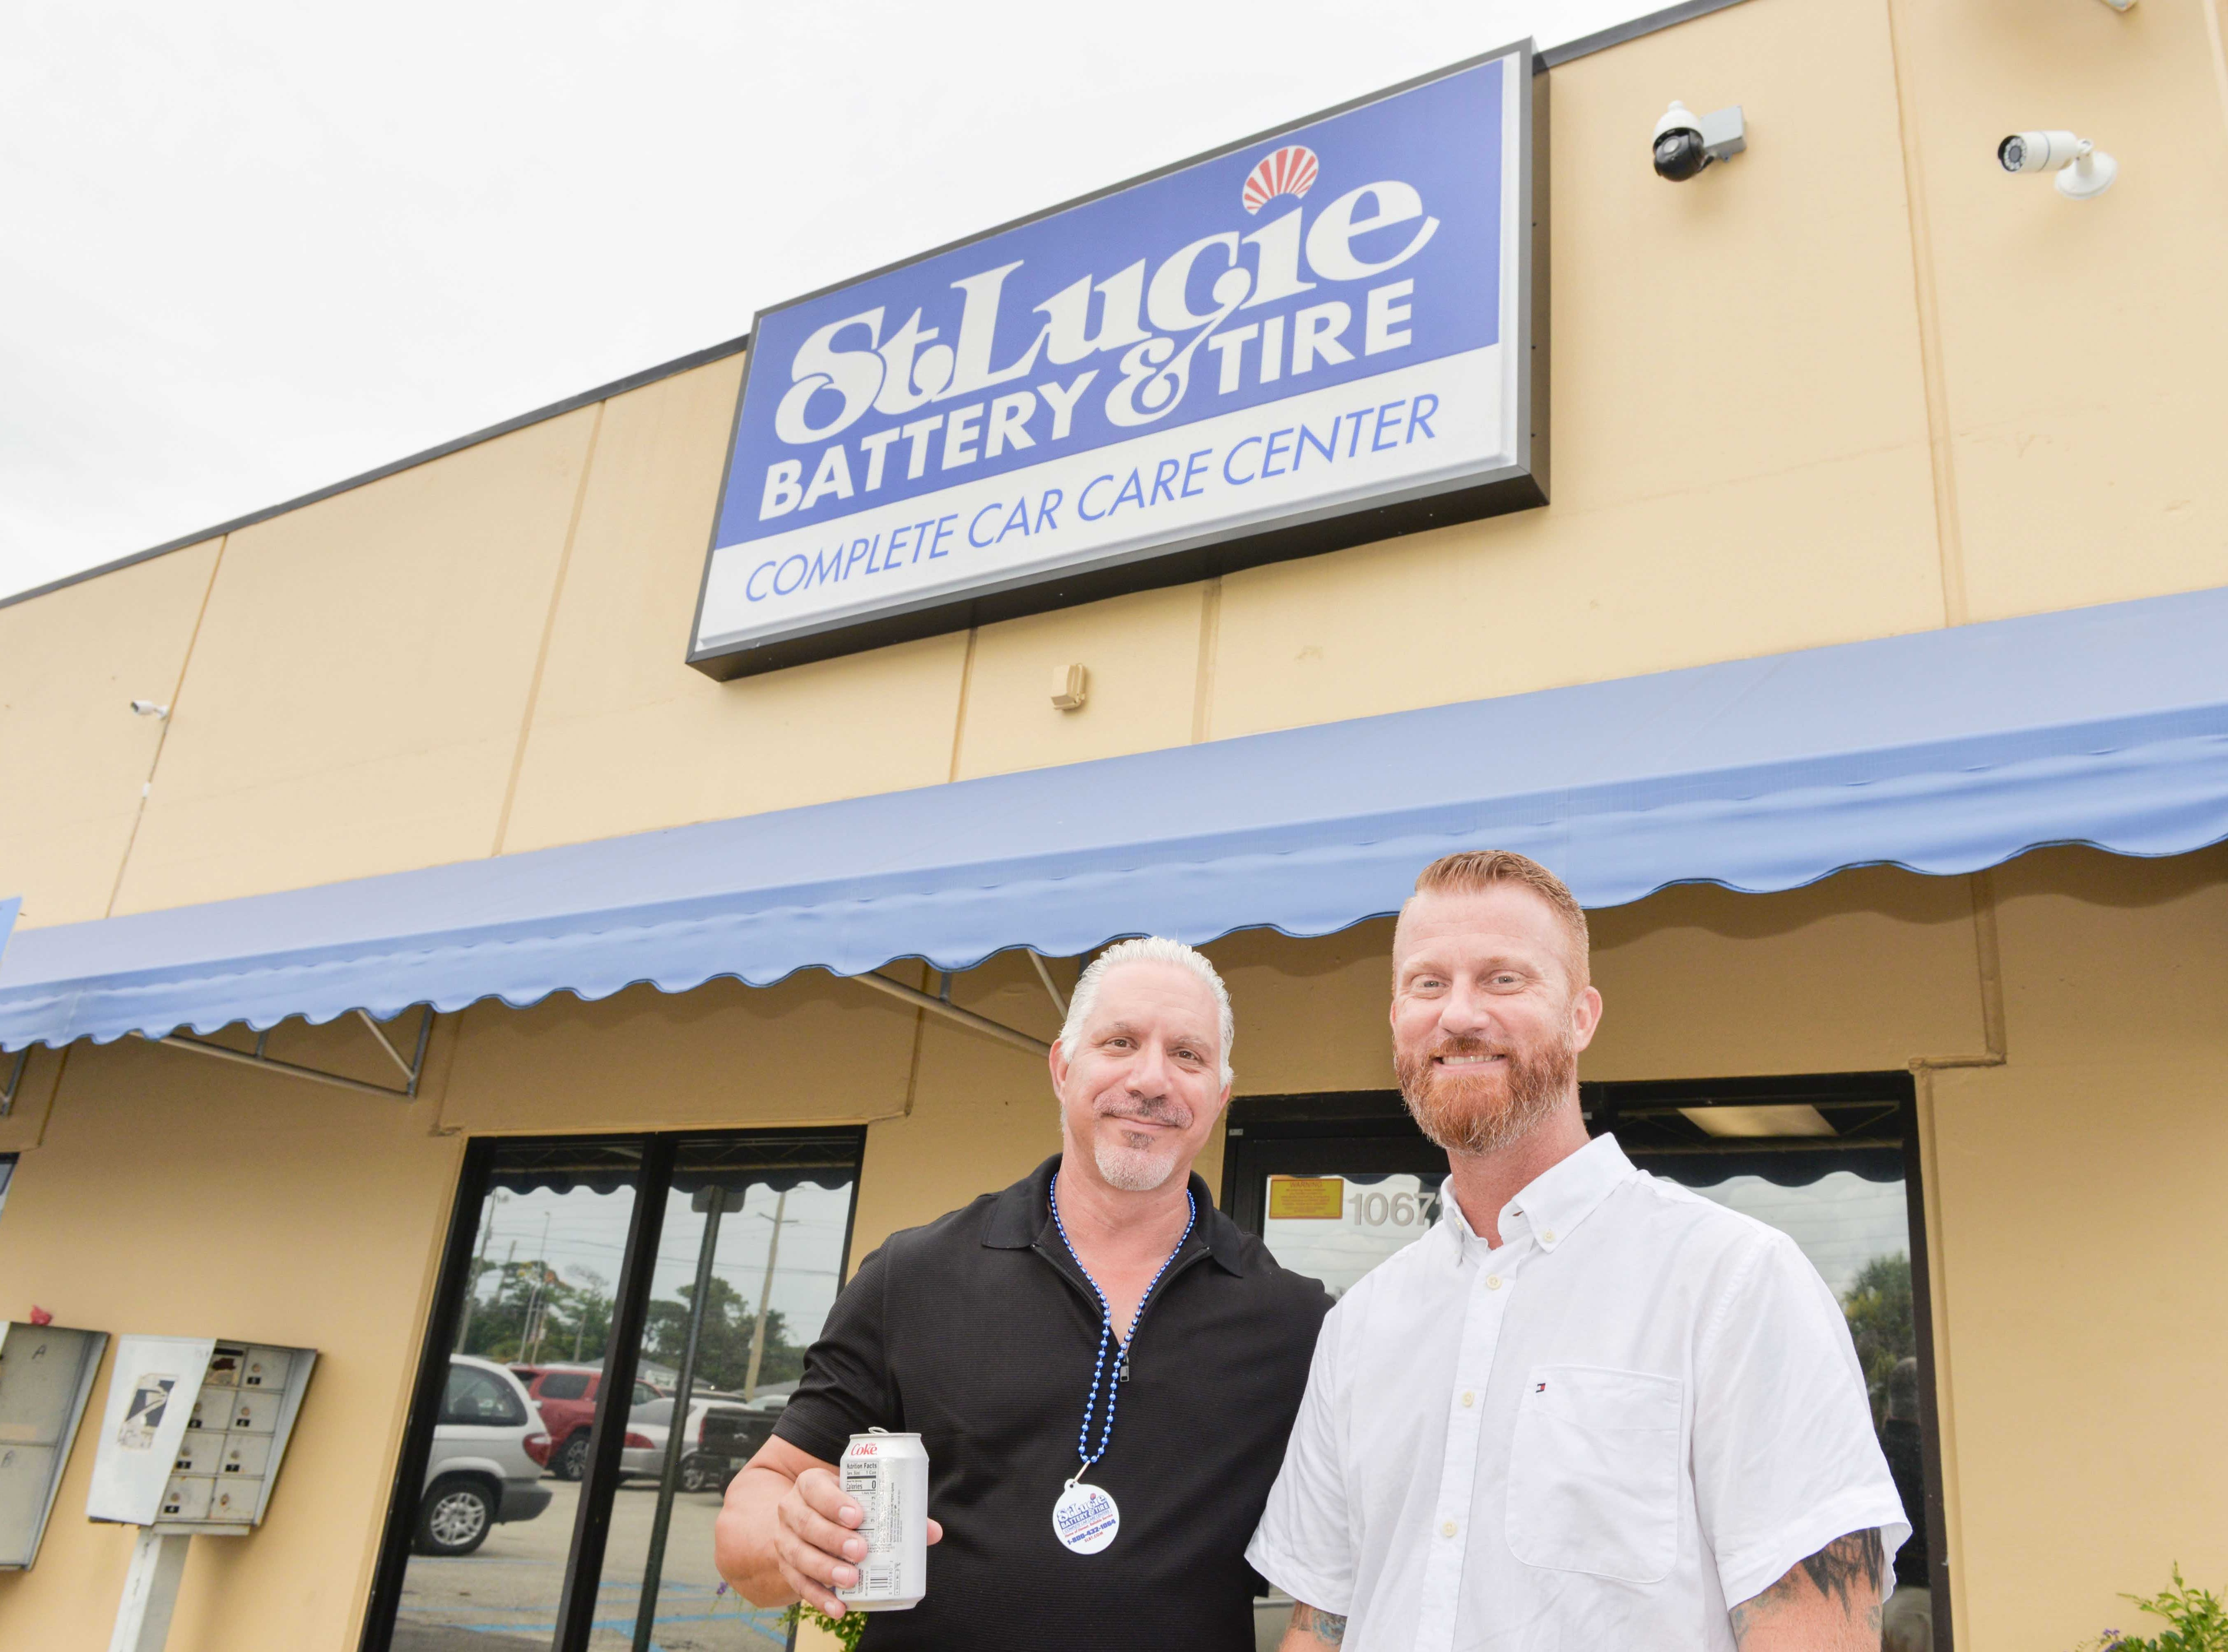 Eric Finkel, left, of MyTreasureCoast.com, with Jeff Deans, general manager of St. Lucie Battery & Tire, at the Treasure Coast Builders Association's Fun After Five networking event.